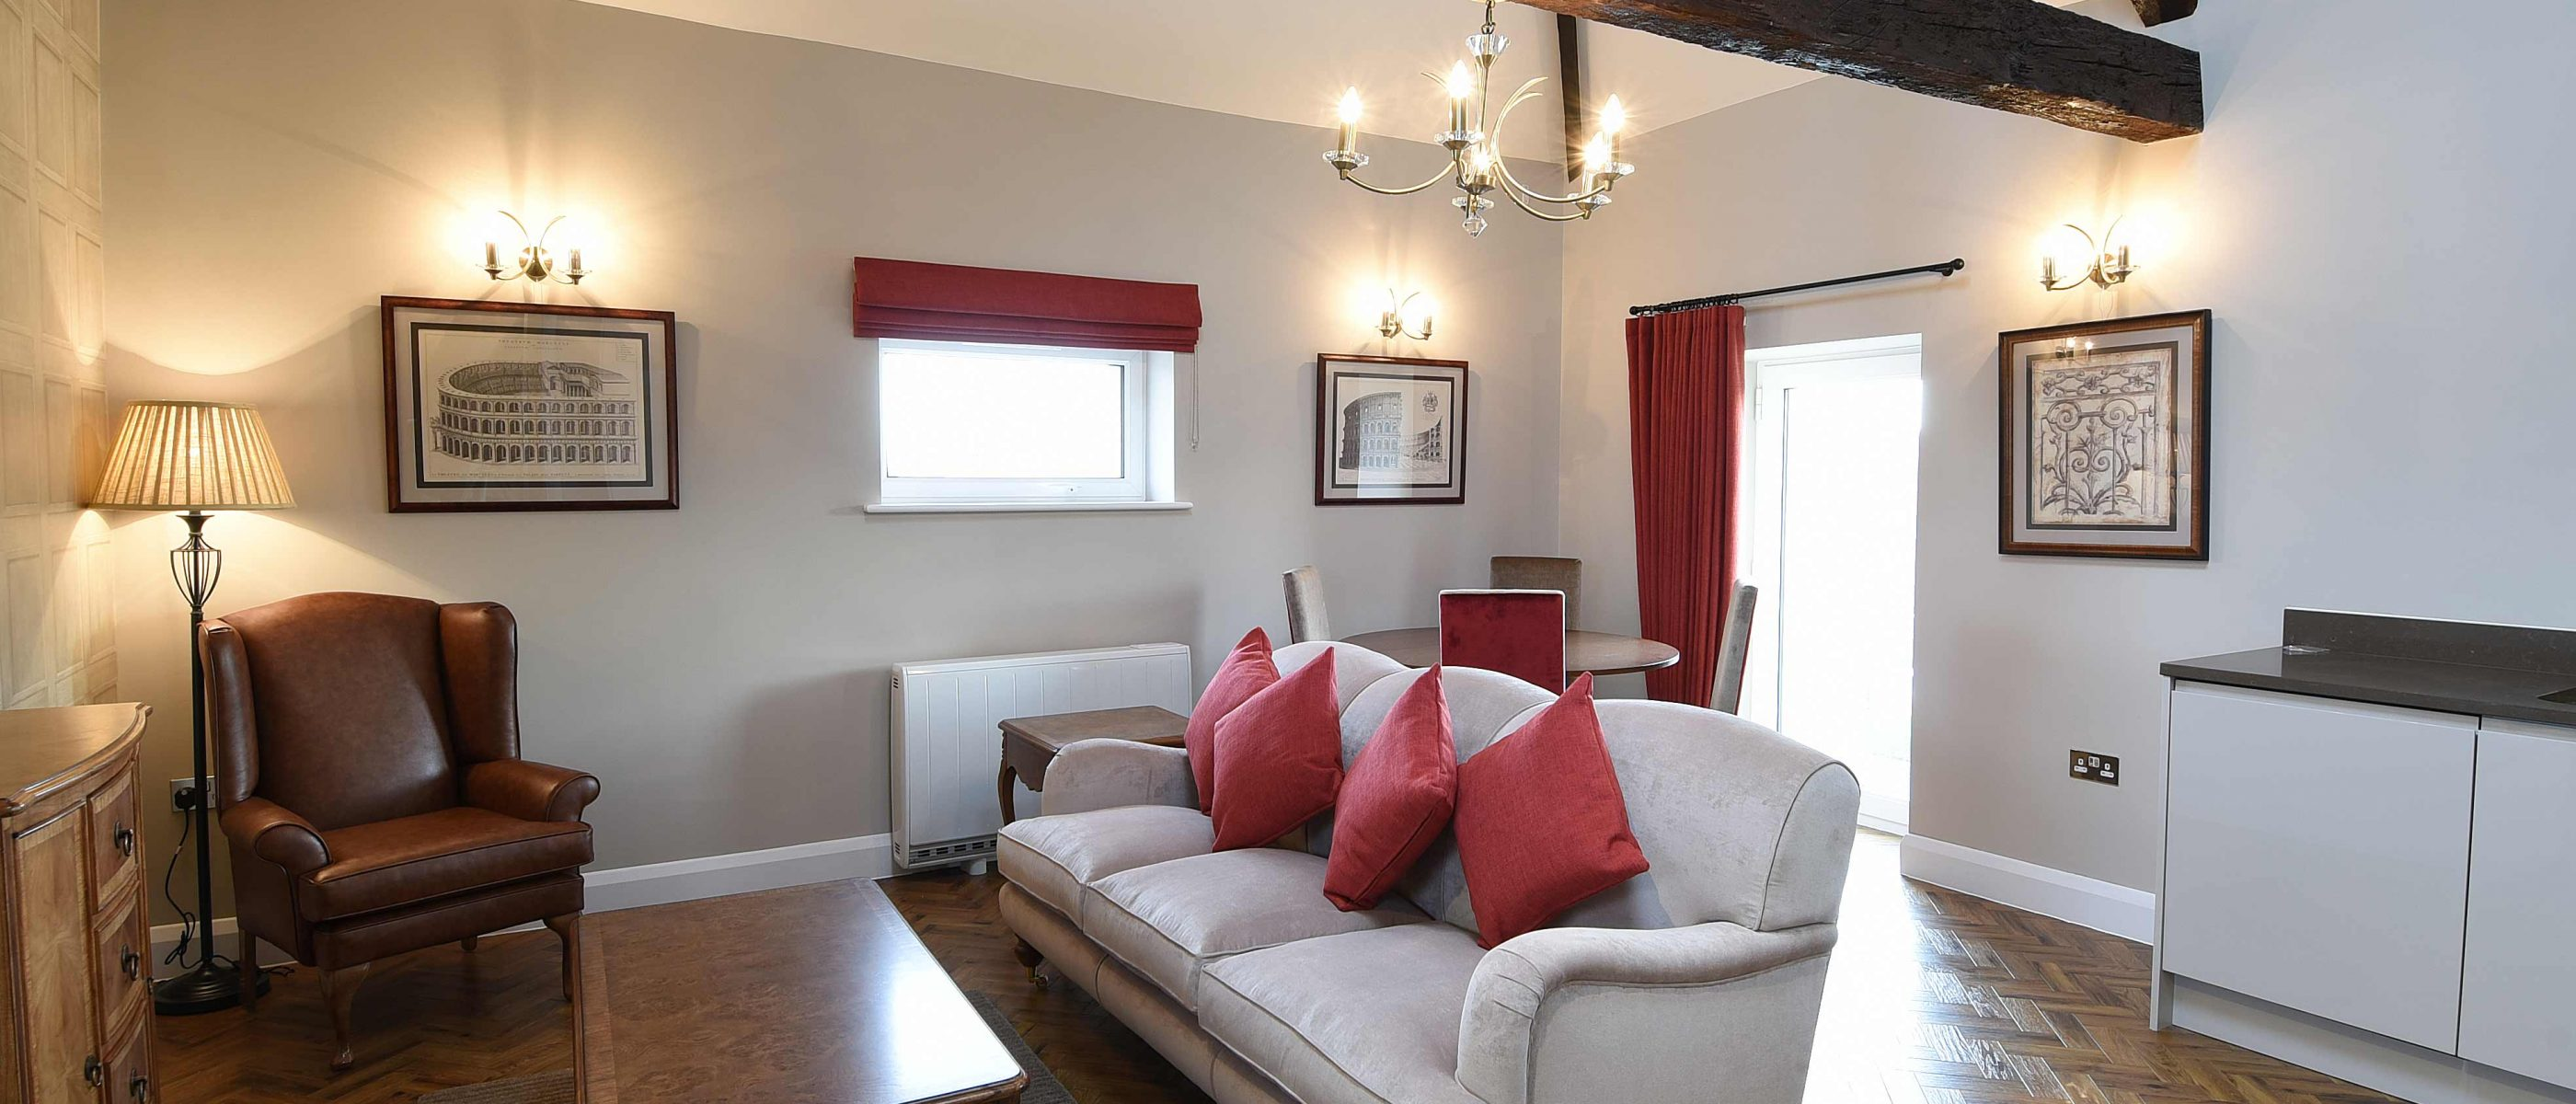 Living area in the Tomkins Suite: a one bedroom luxury serviced apartment at The Old Gaol, by the River Thames in Abingdon, near Oxford. Ideal accommodation for corporate or holiday short lets